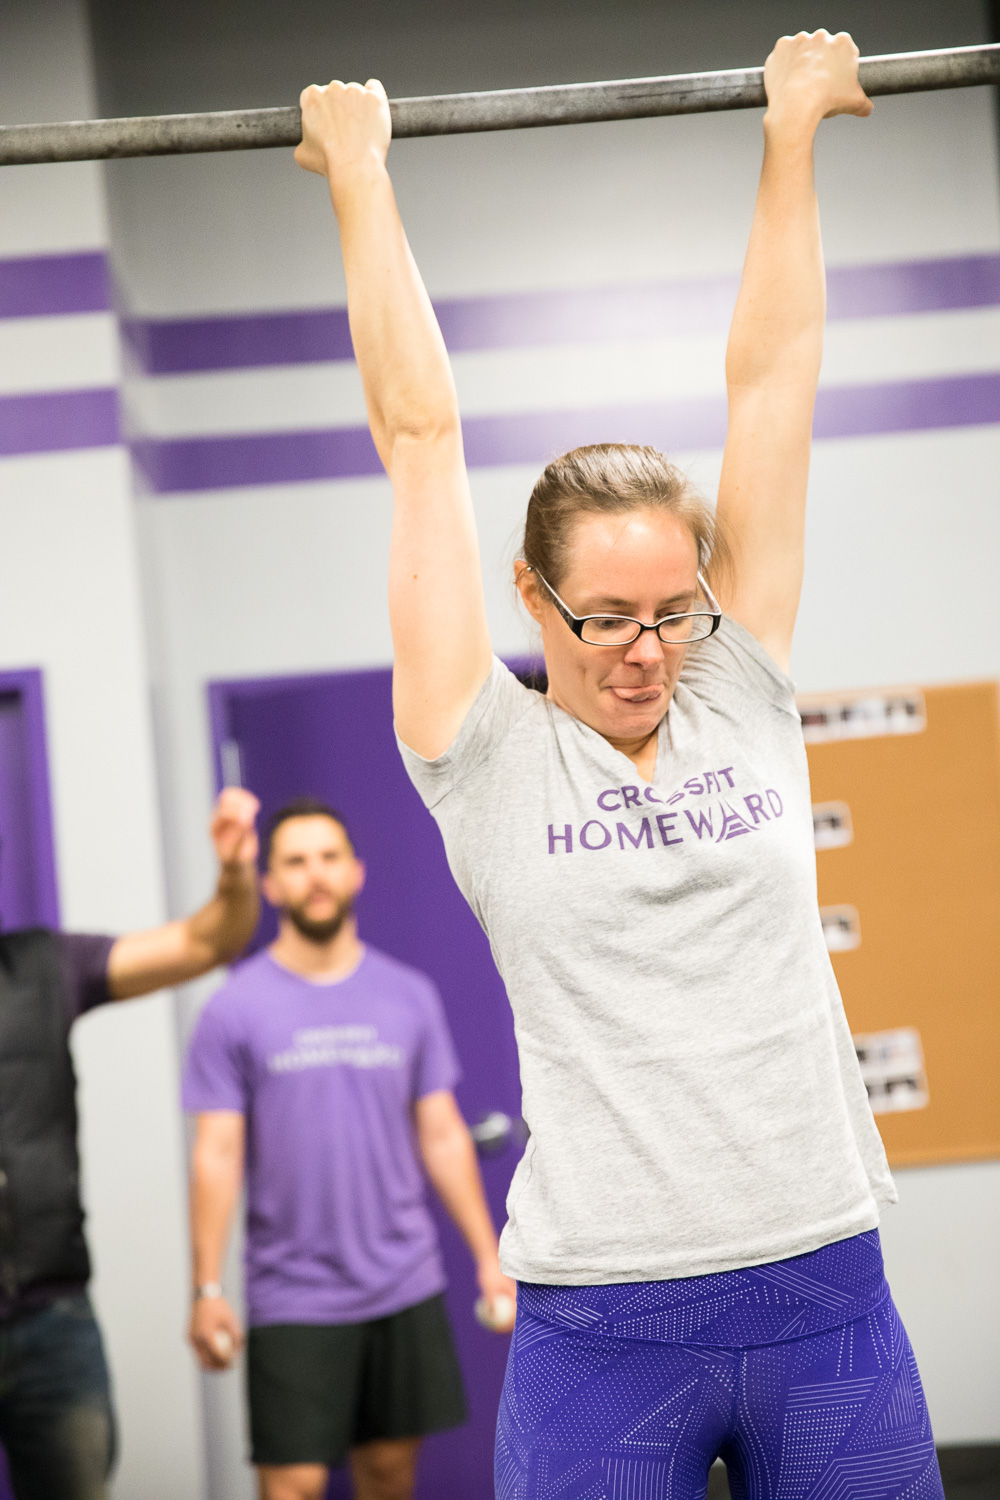 CrossFit Homeward emphasizes a supportive community that encourages fun and athletic growth and success